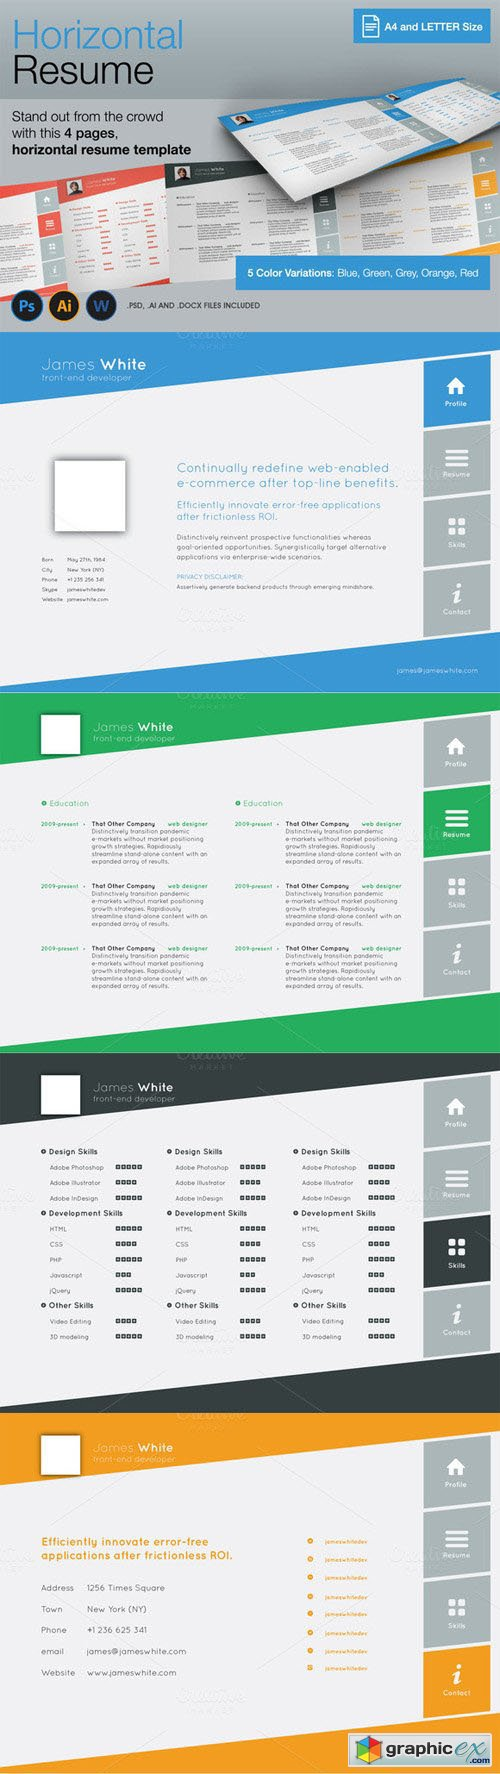 horizontal 4 pages resume 187 free vector stock